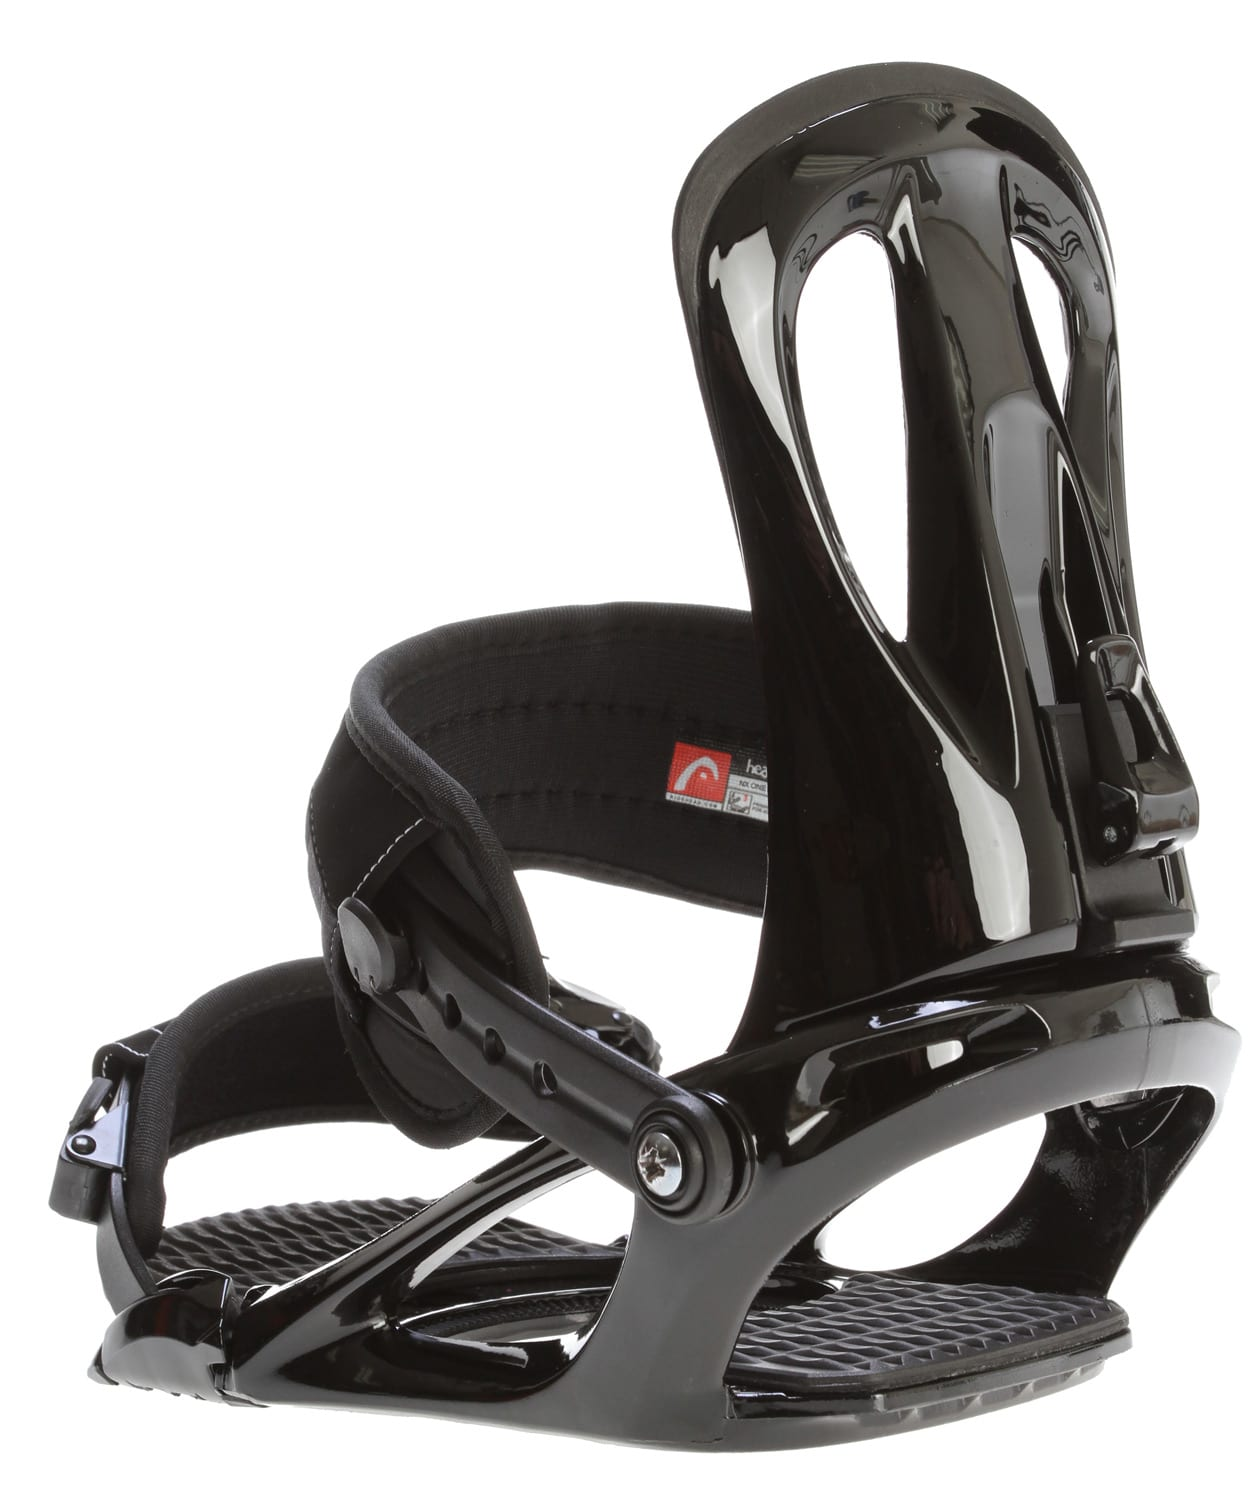 On Sale Head NX One Snowboard Bindings Up To 65% Off